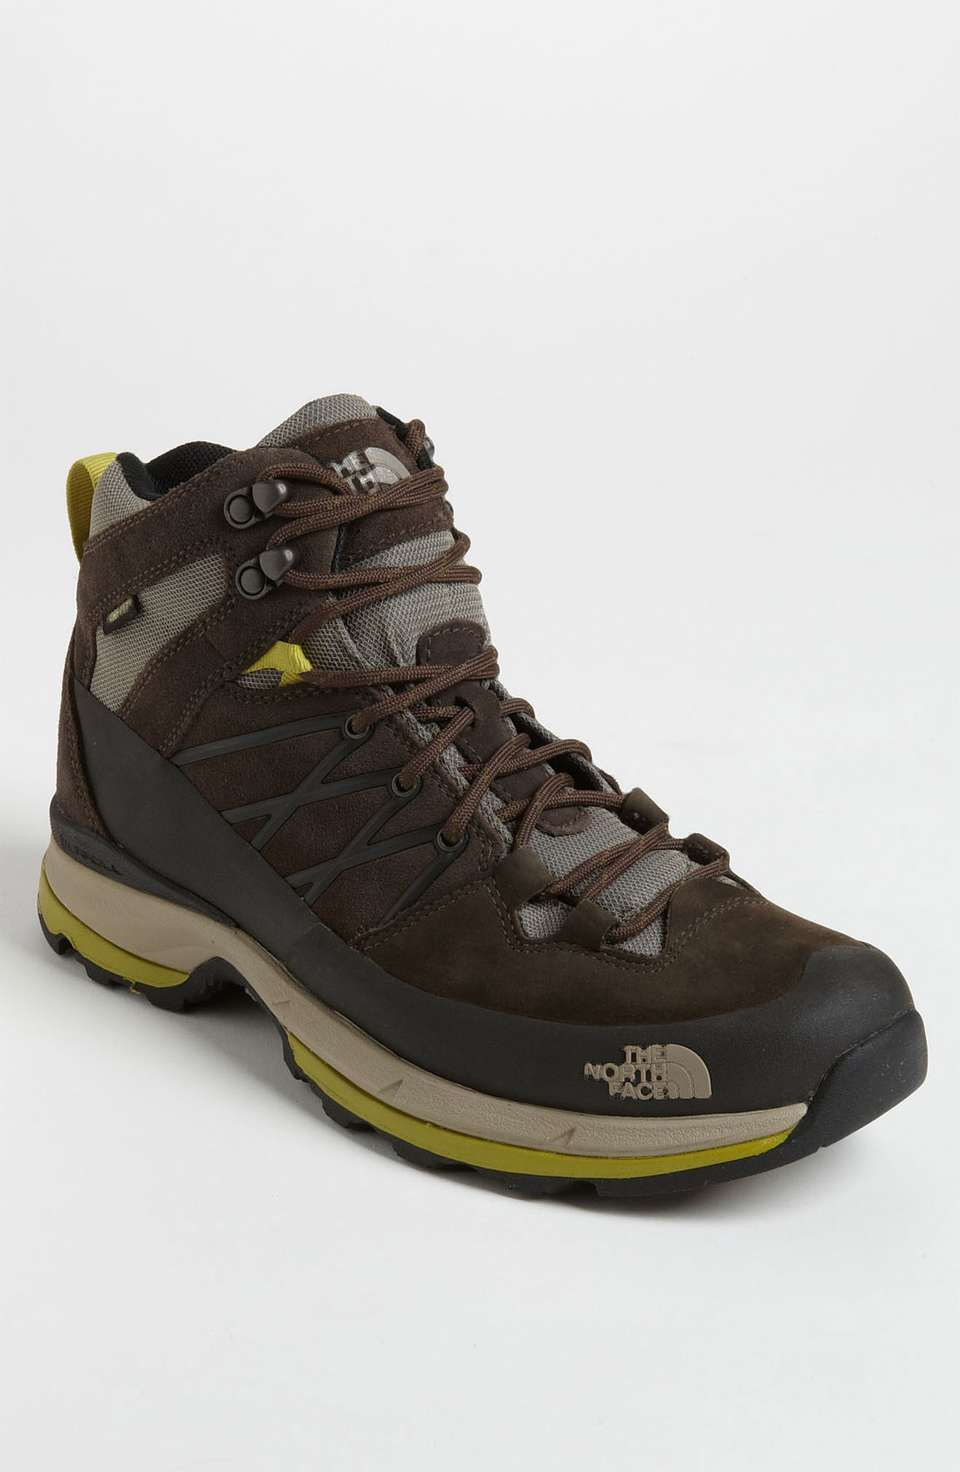 88fc828396dca1 The North Face  Wreck Mid GTX  Hiking Boot on Wantering